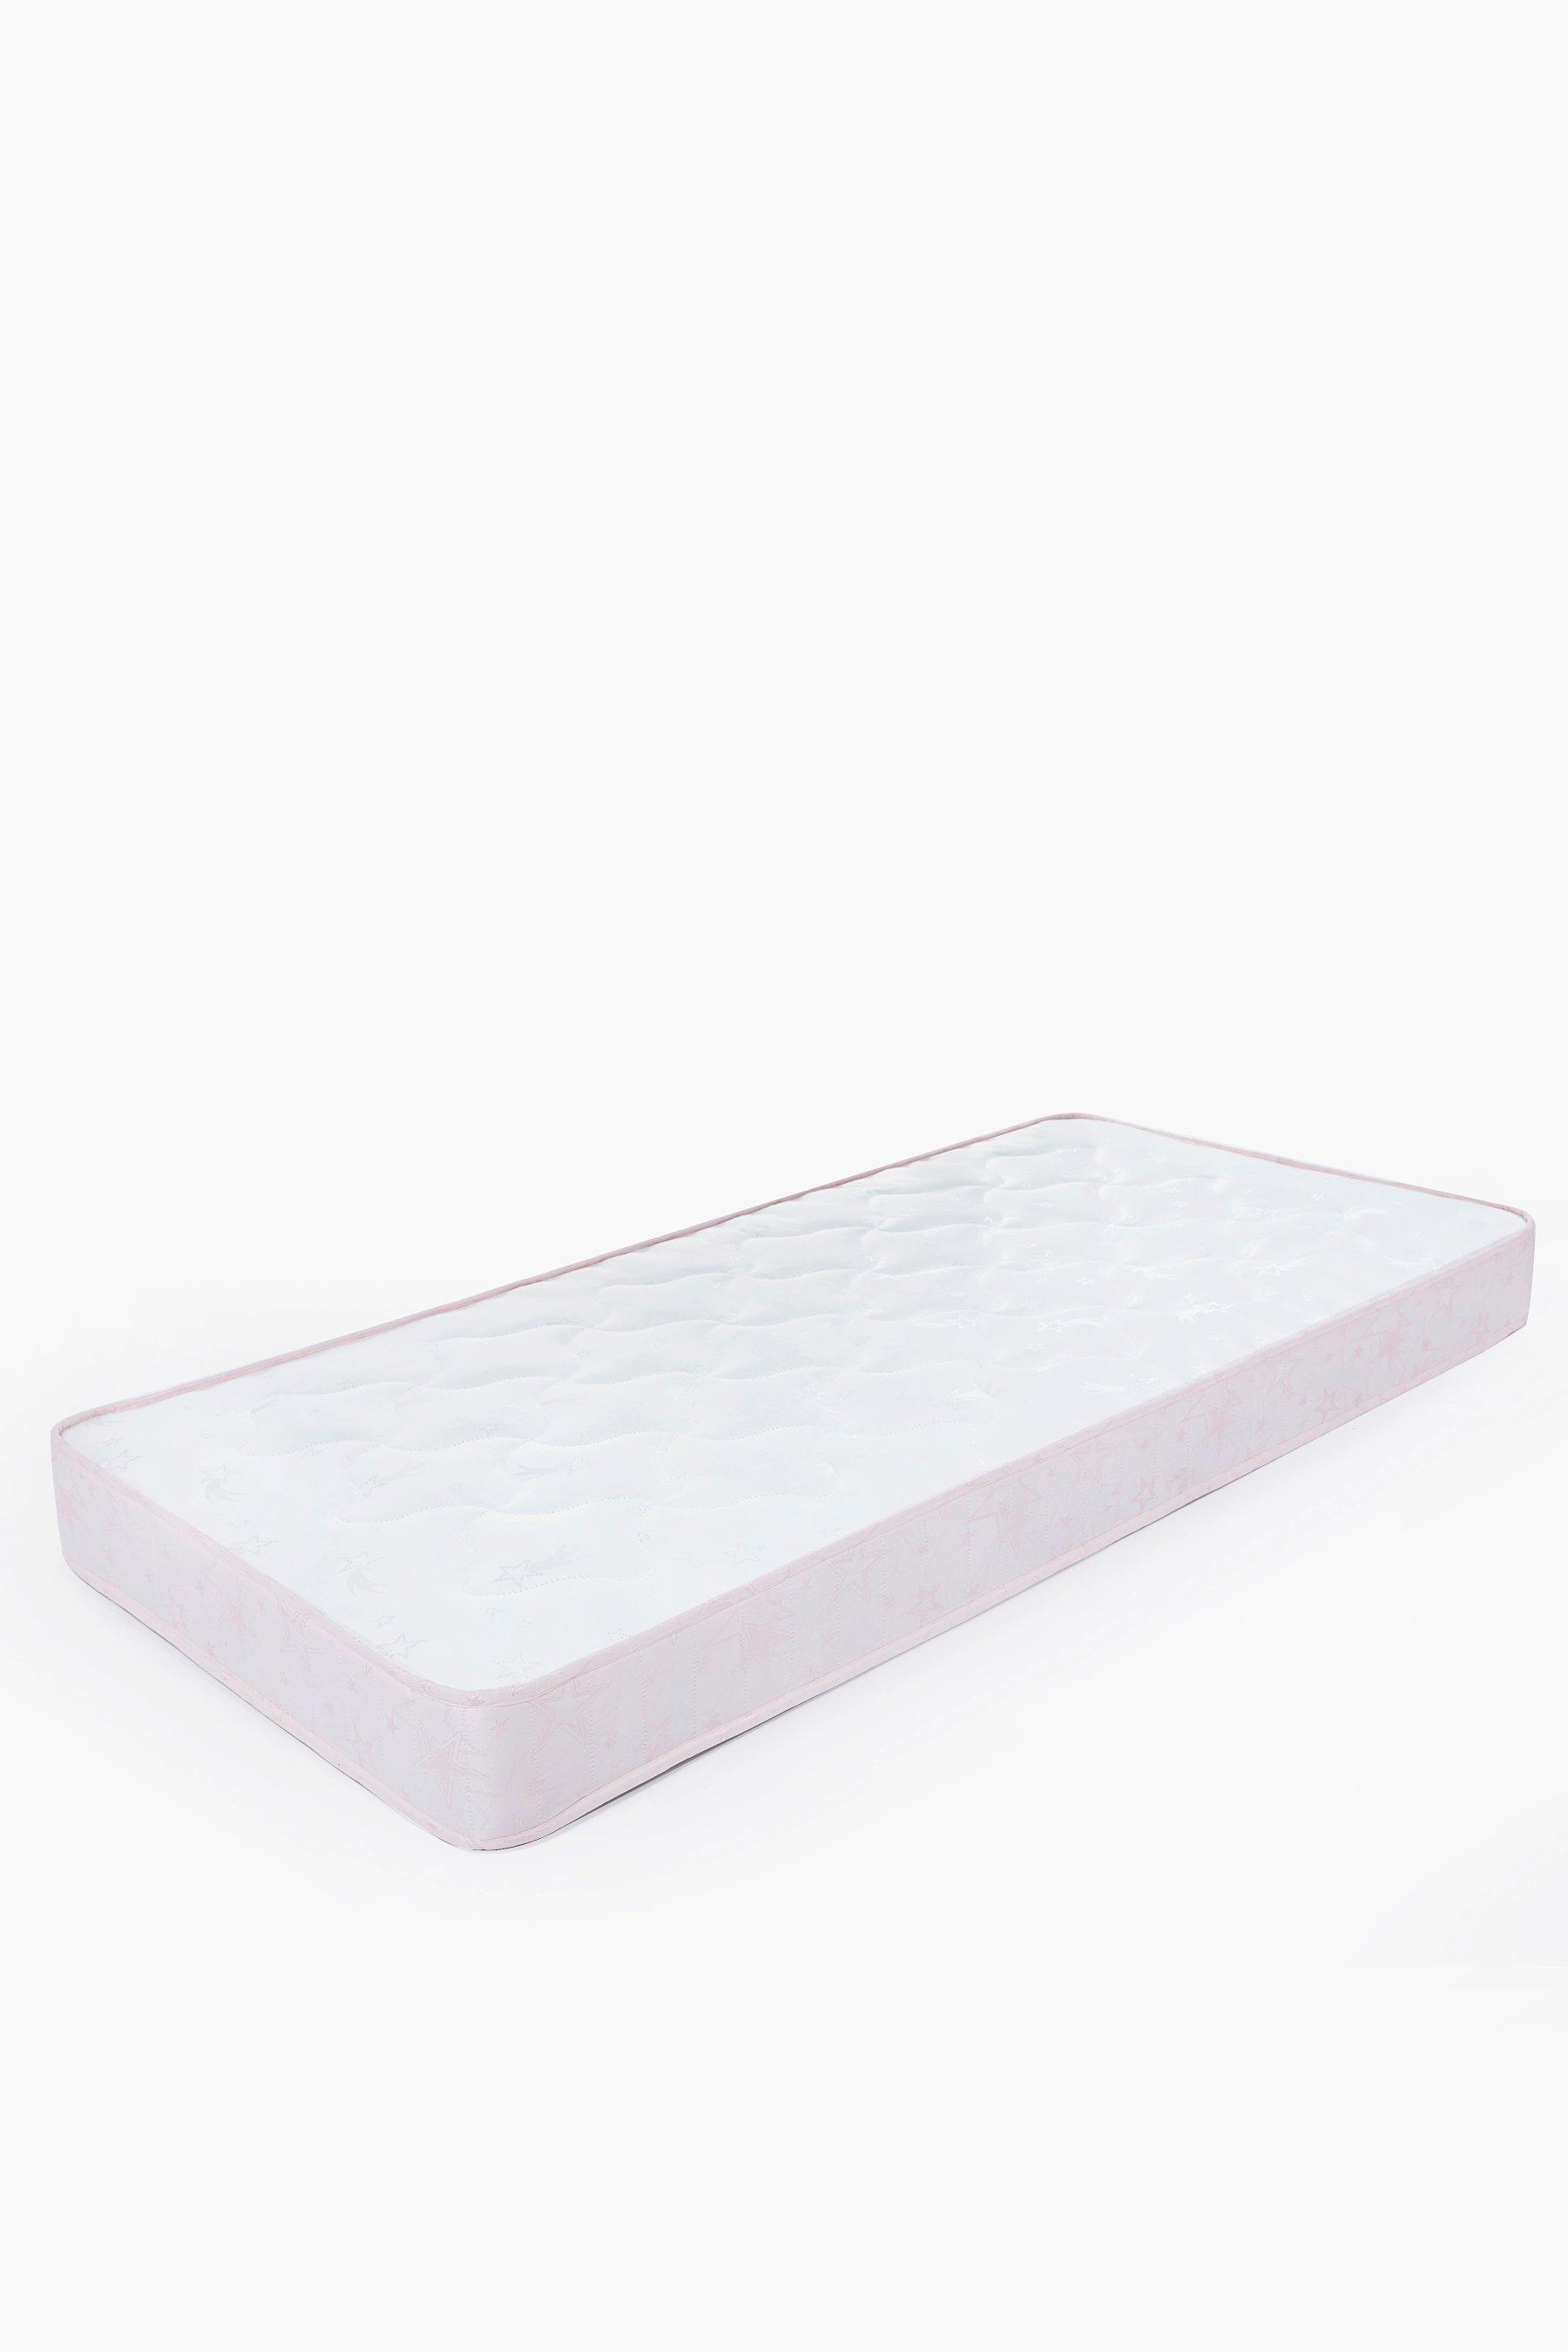 Compare prices for Airsprung Single Mattress